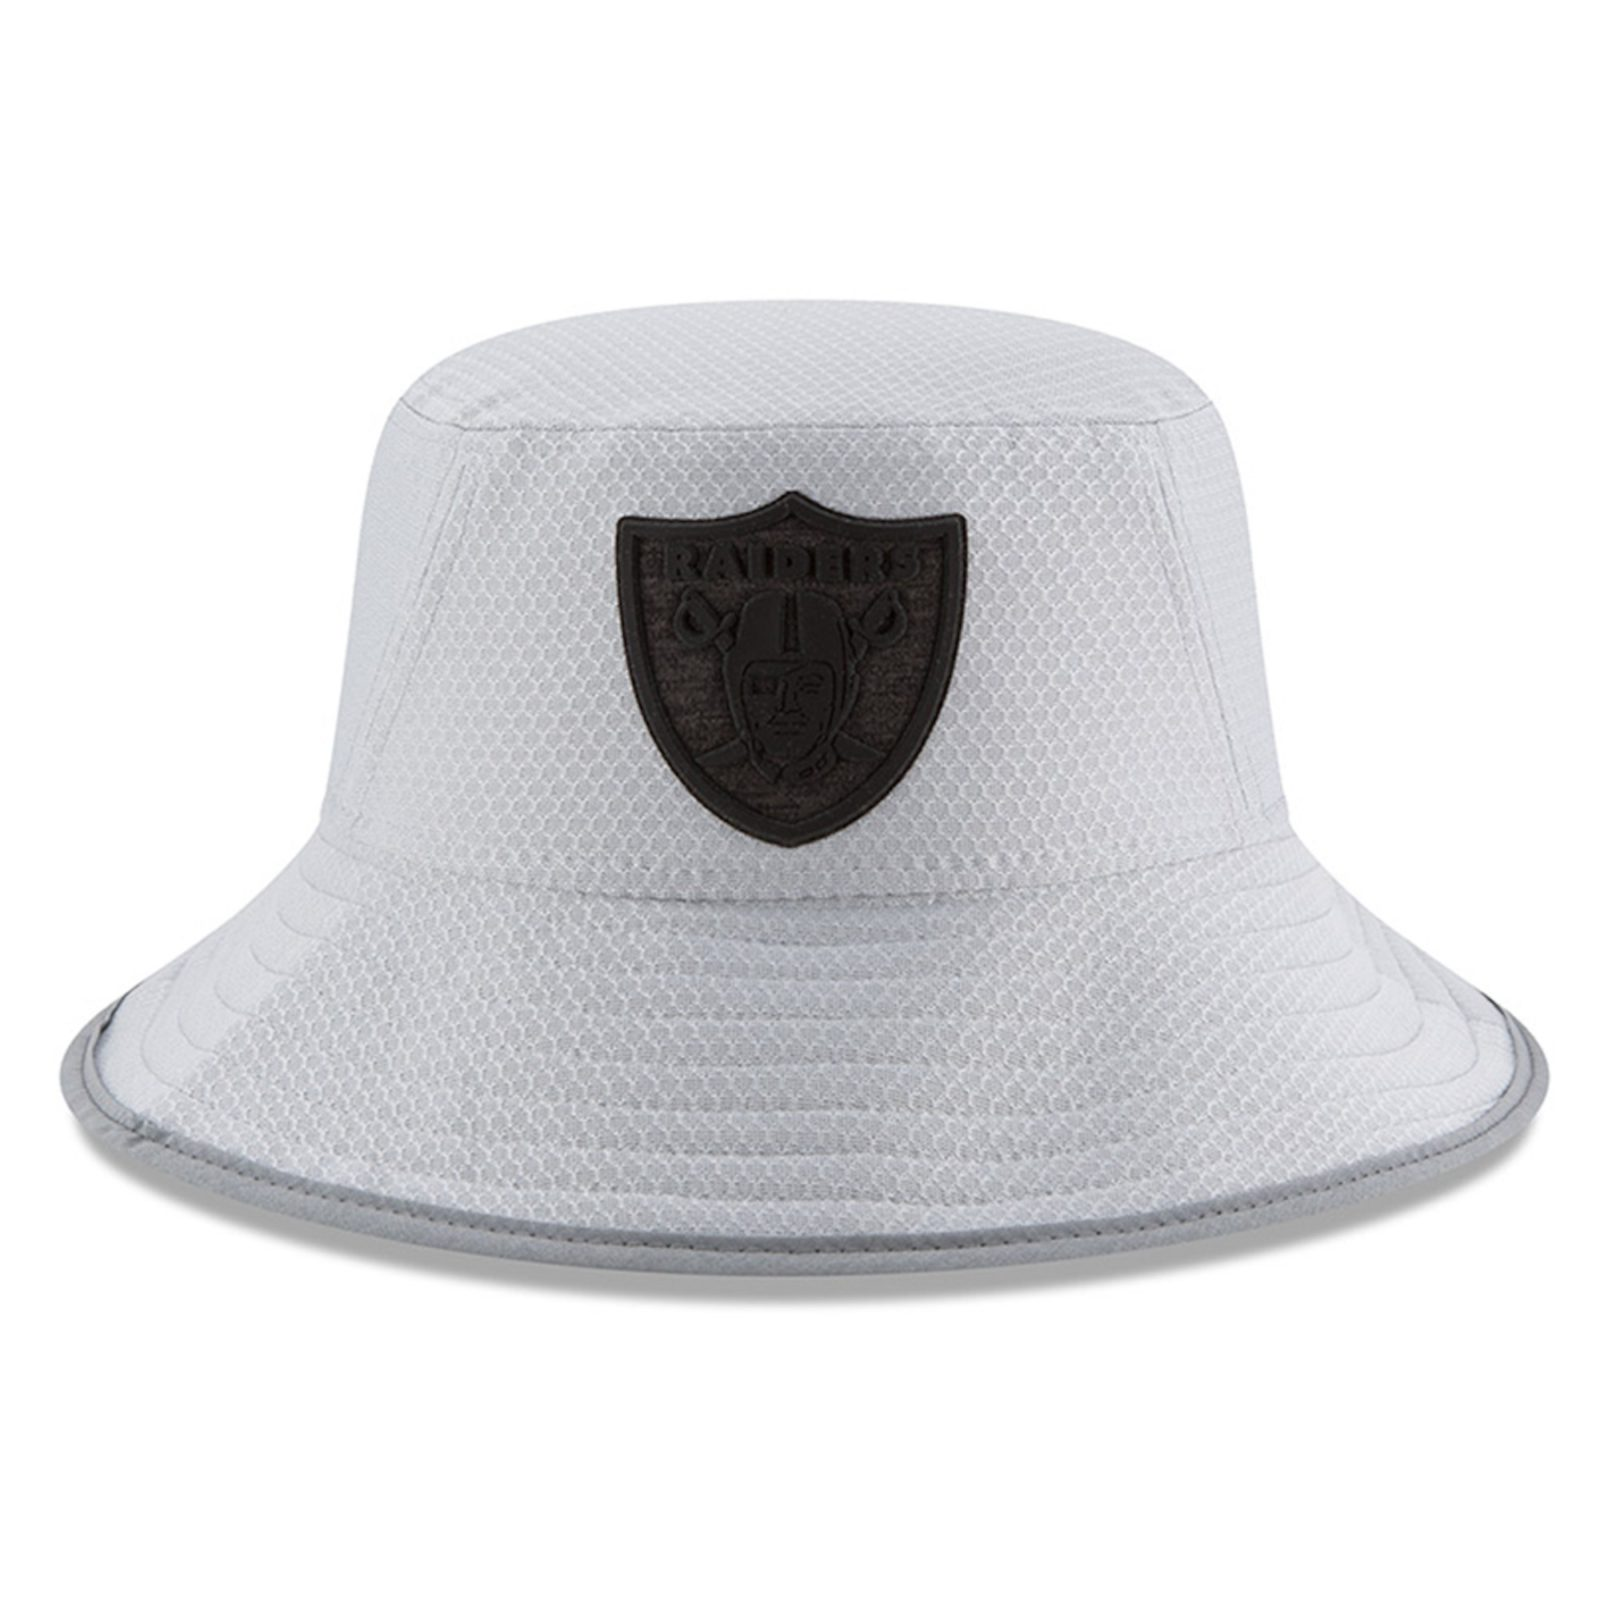 5909829ce0e177 Oakland Raiders New Era 2018 Training Camp Official Bucket Hat – Gray